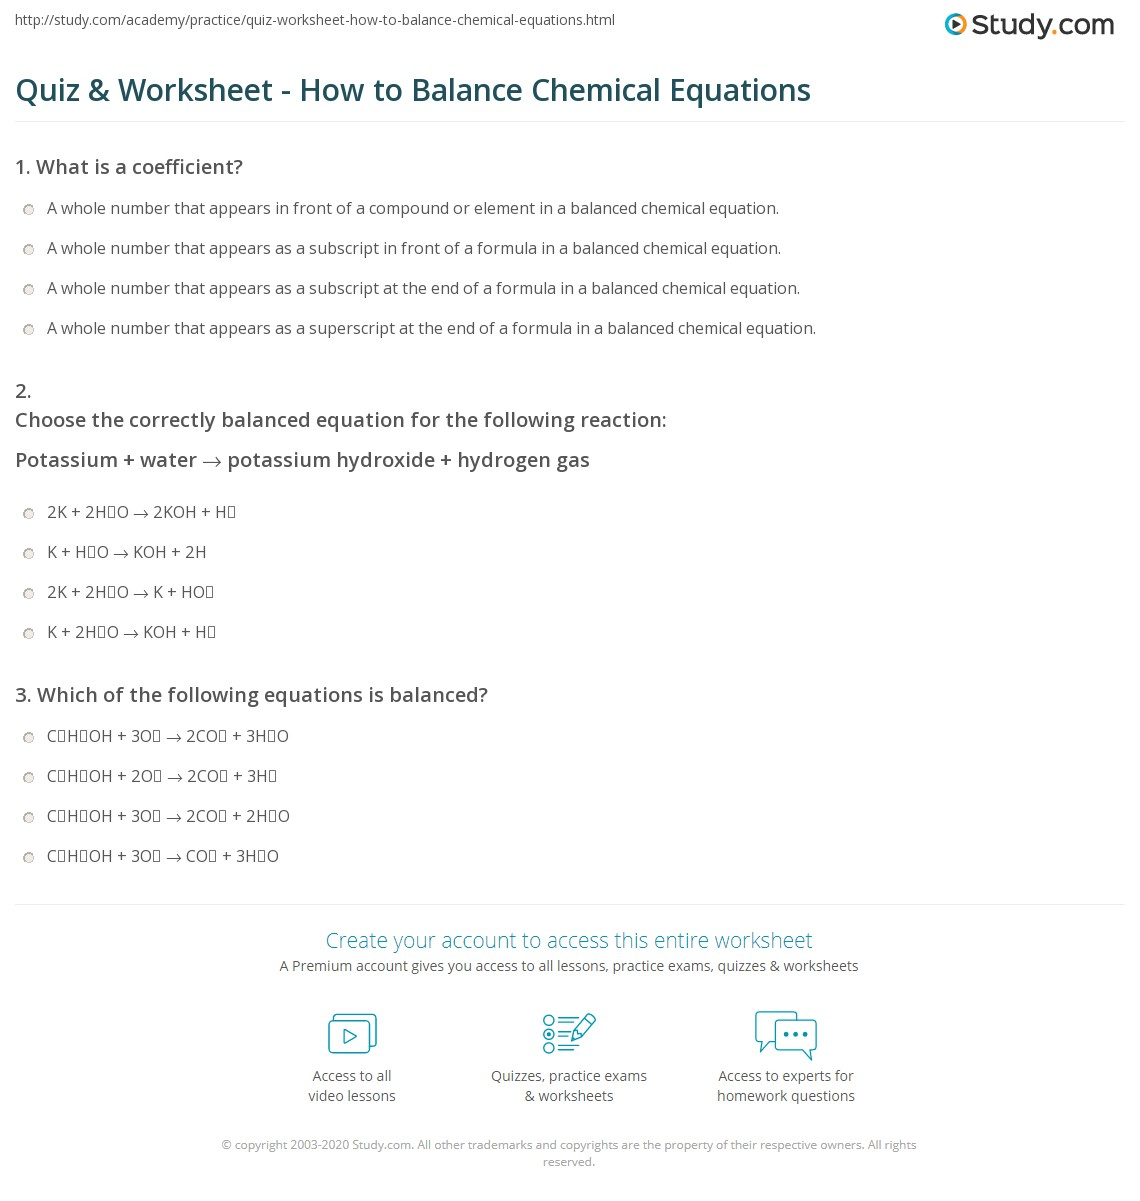 Printables Chemistry Worksheets With Answers balancing chemical equations worksheets with answers pichaglobal quiz amp worksheet how to balance study com